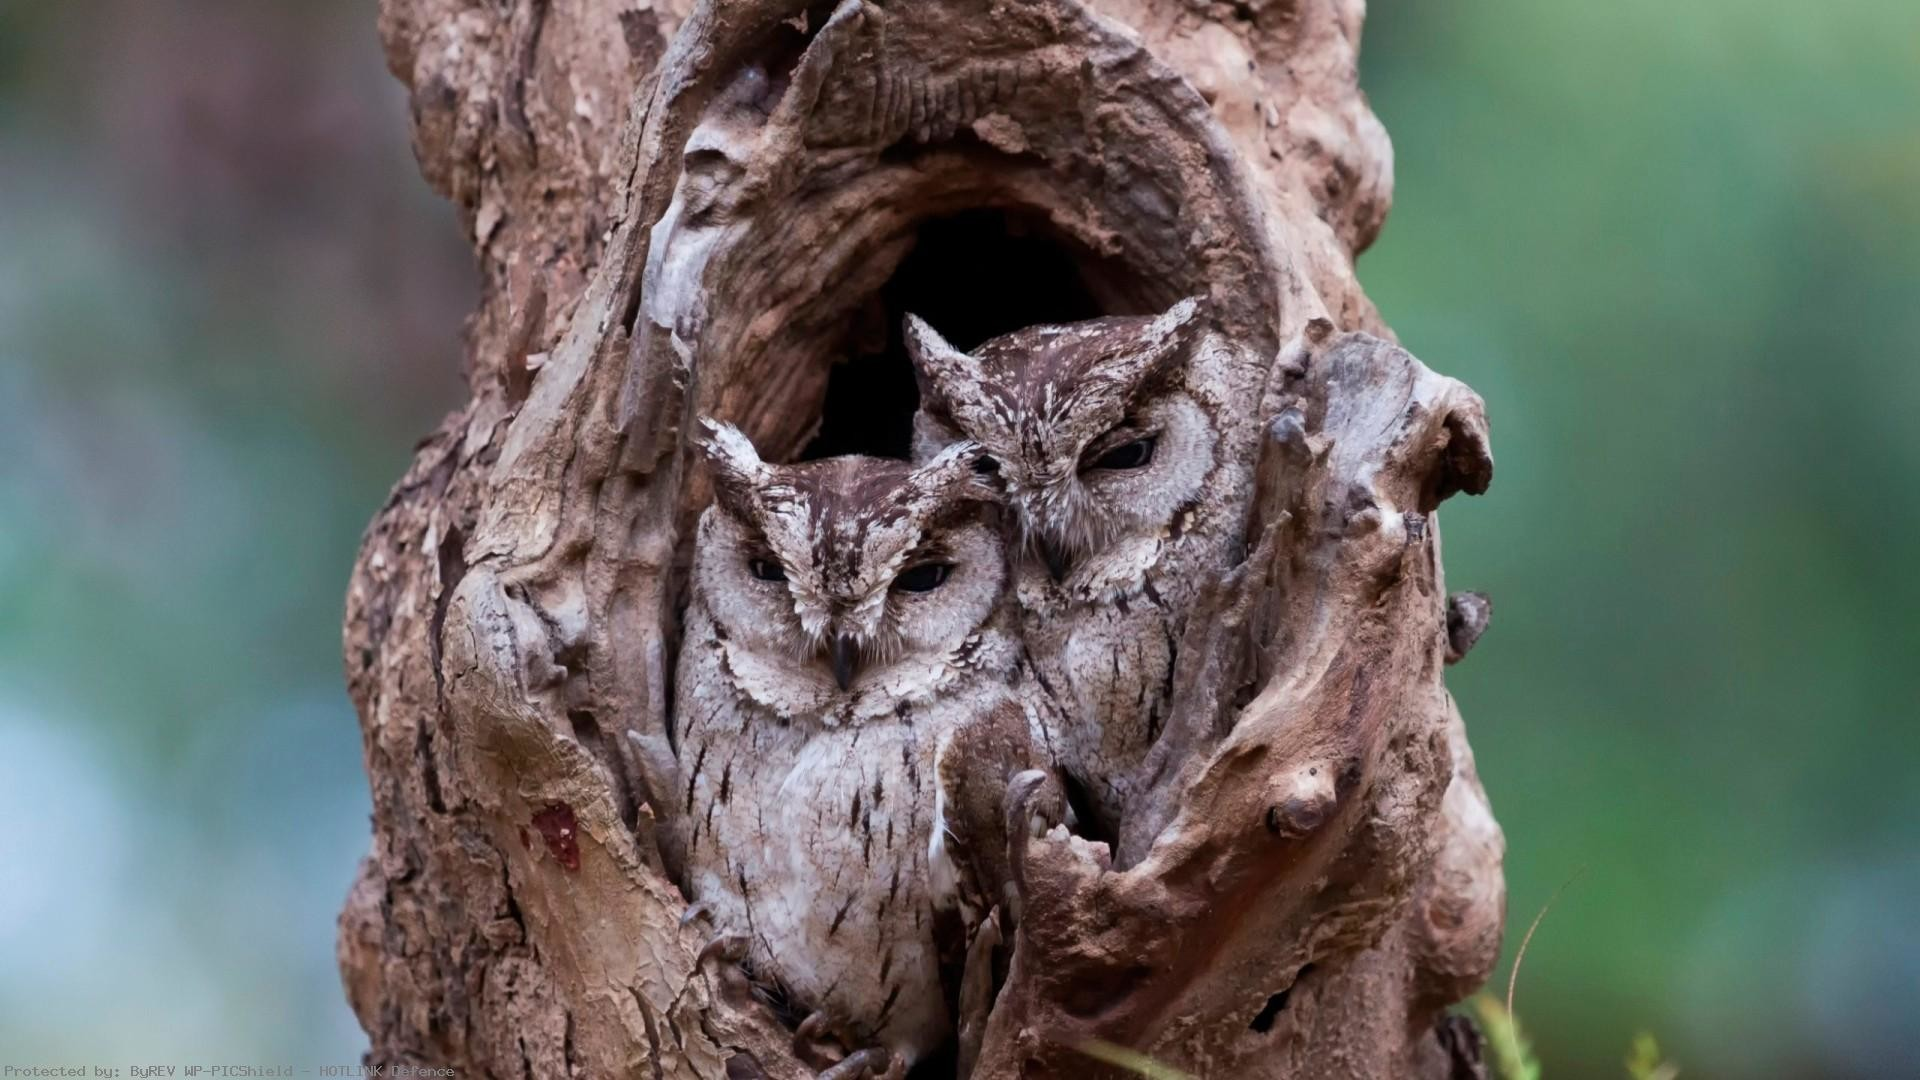 Two-Owl-in-Tree-1920-x-1080-Need-